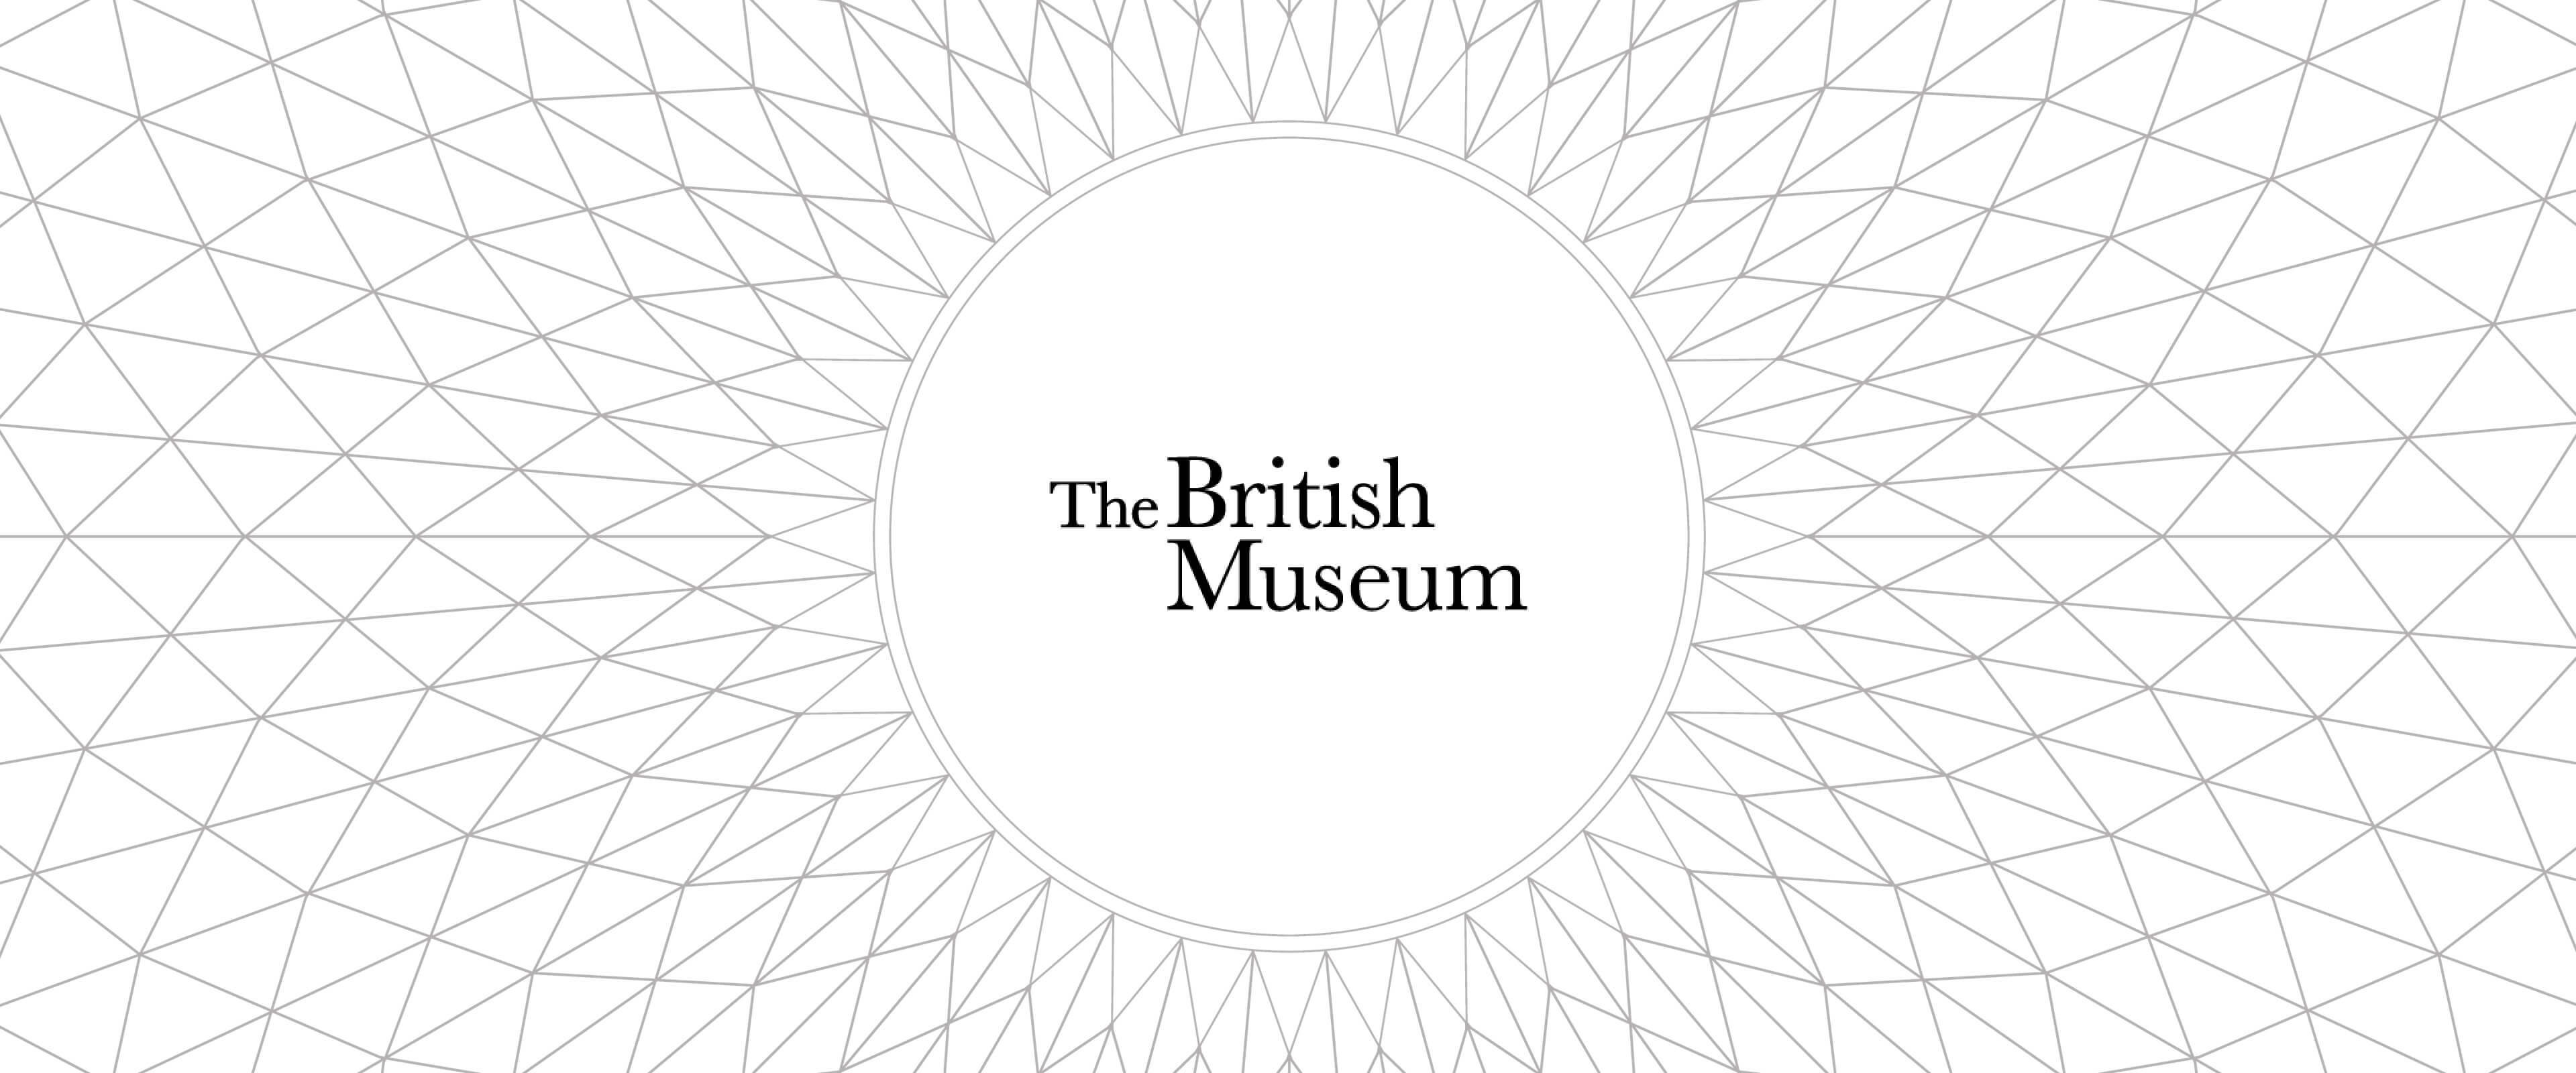 Philip_Mawer_British_Museum_Header